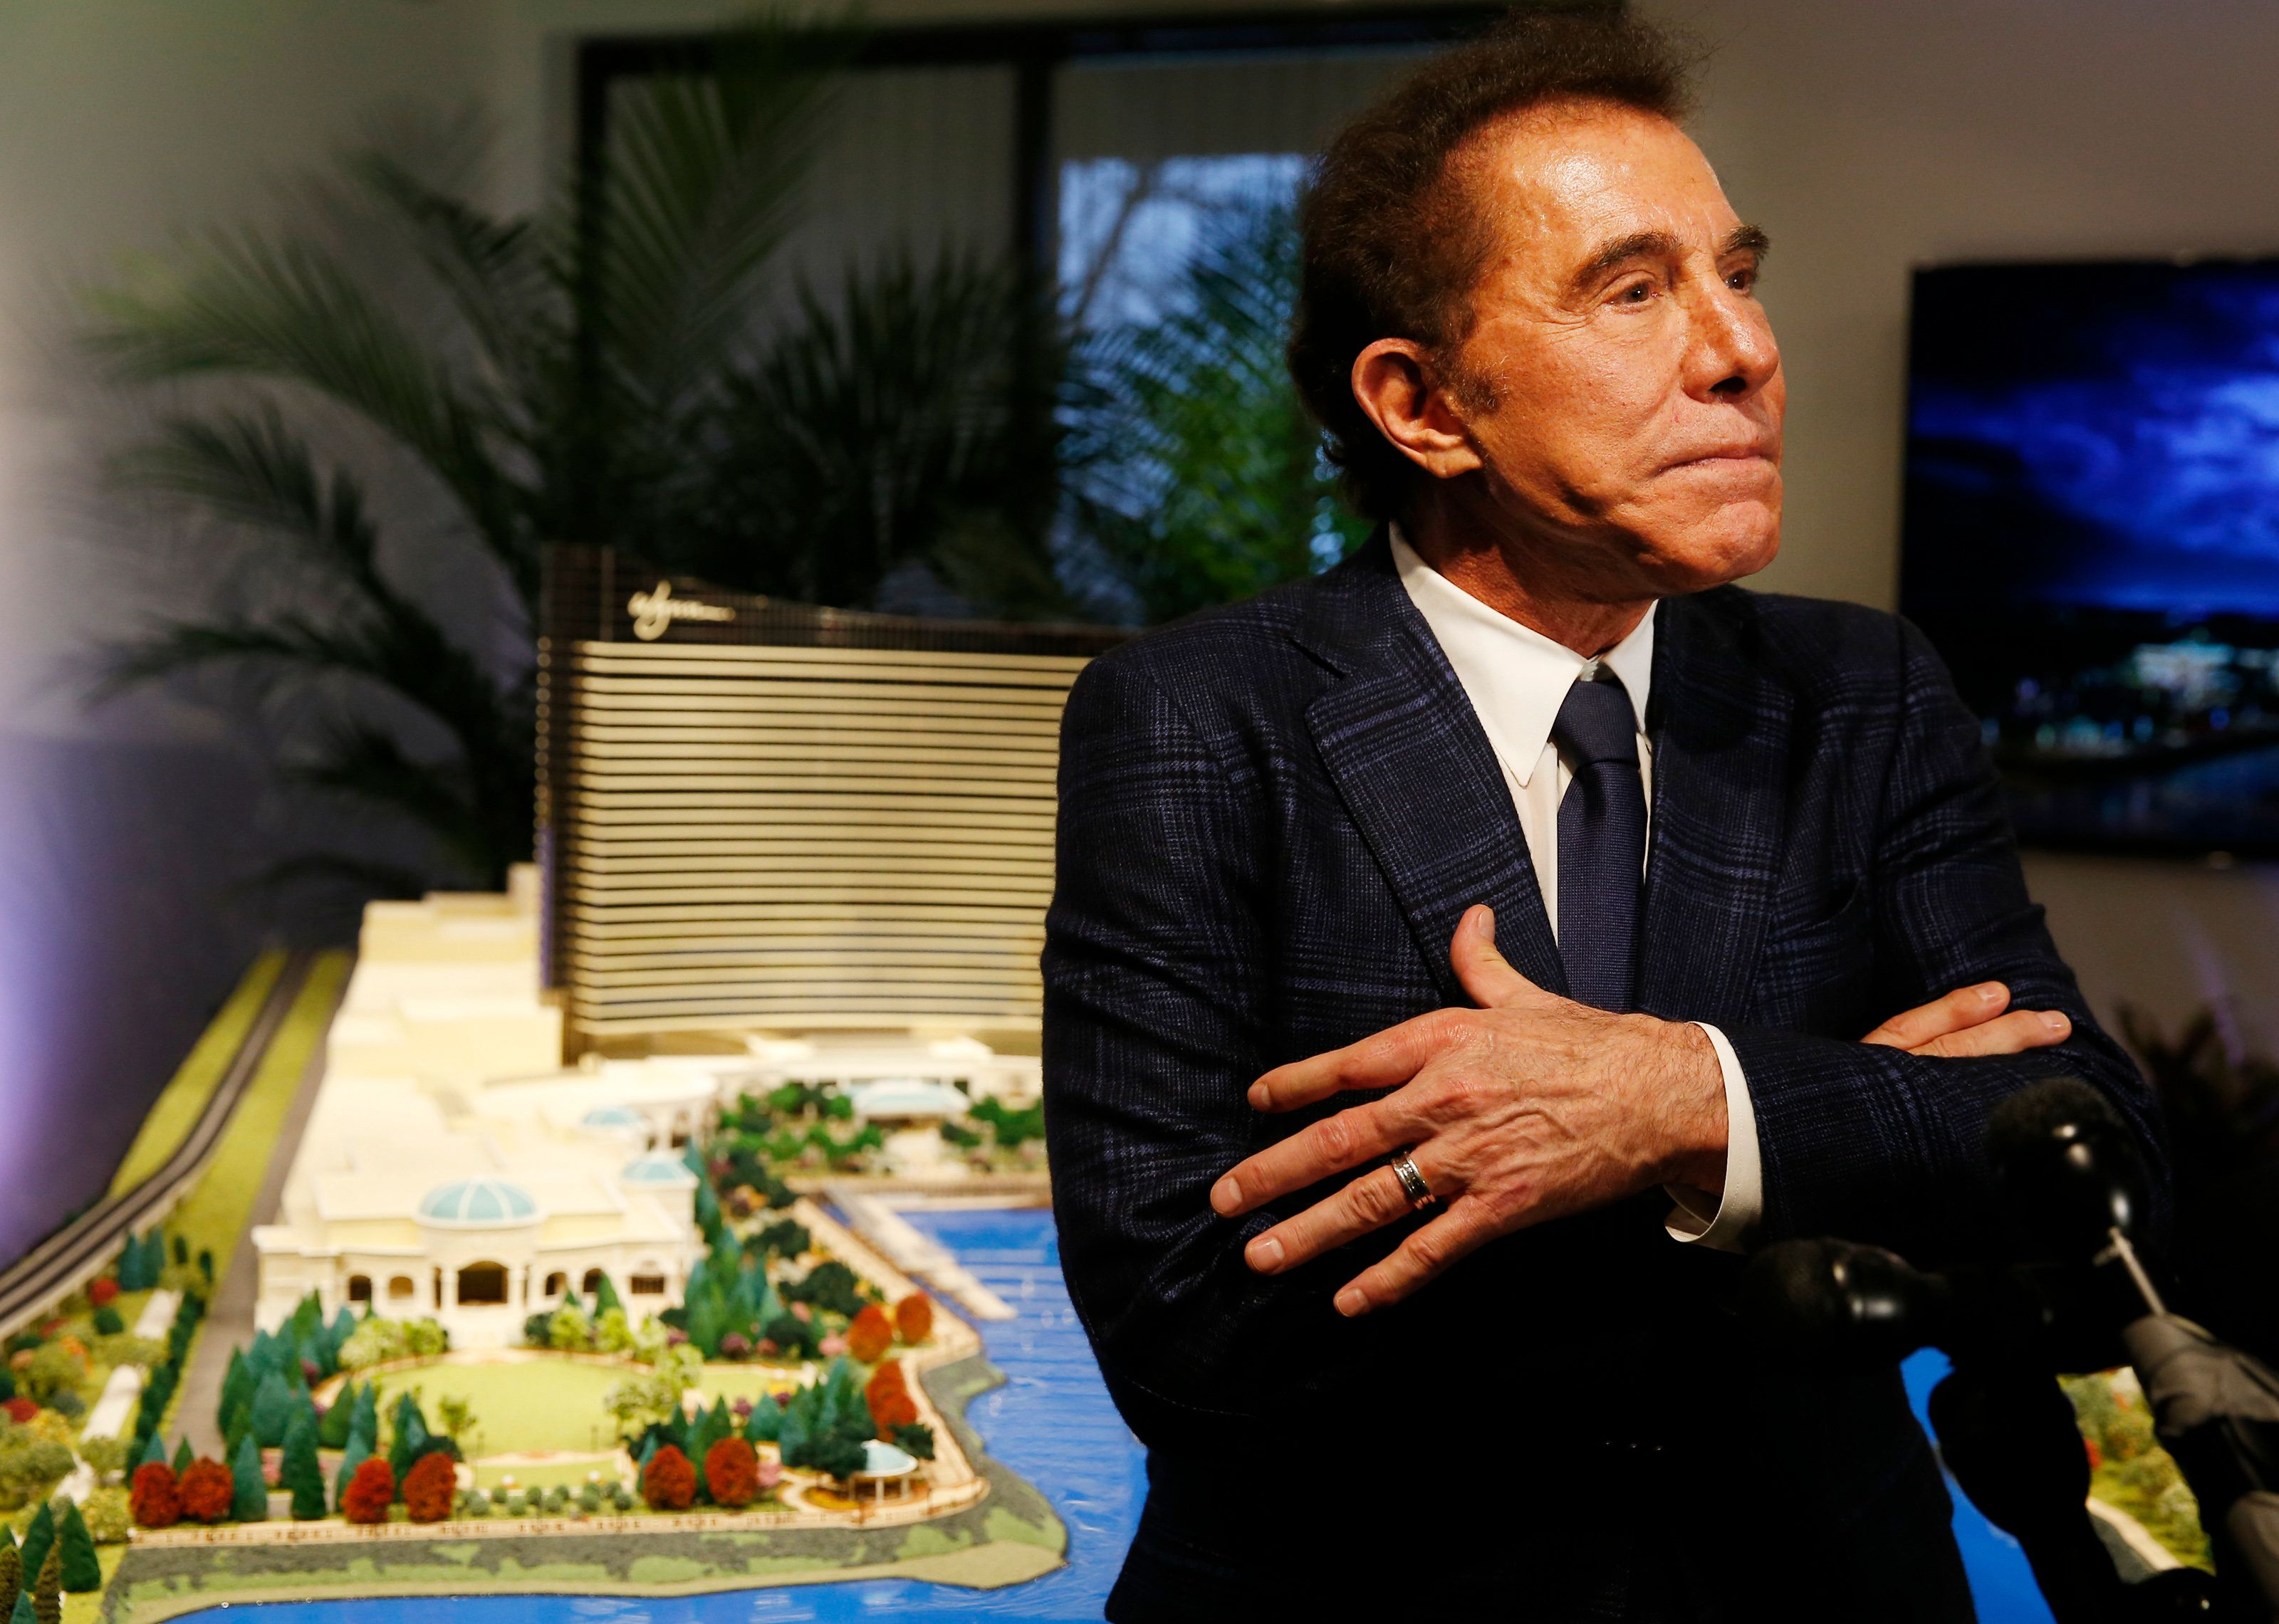 MEDFORD, MA - MARCH 15: Steve Wynn speaks to reporters about a planned casino in Everett during a press conference in Medford, Mass., on March 15, 2016. (Photo by Jessica Rinaldi/The Boston Globe via Getty Images)